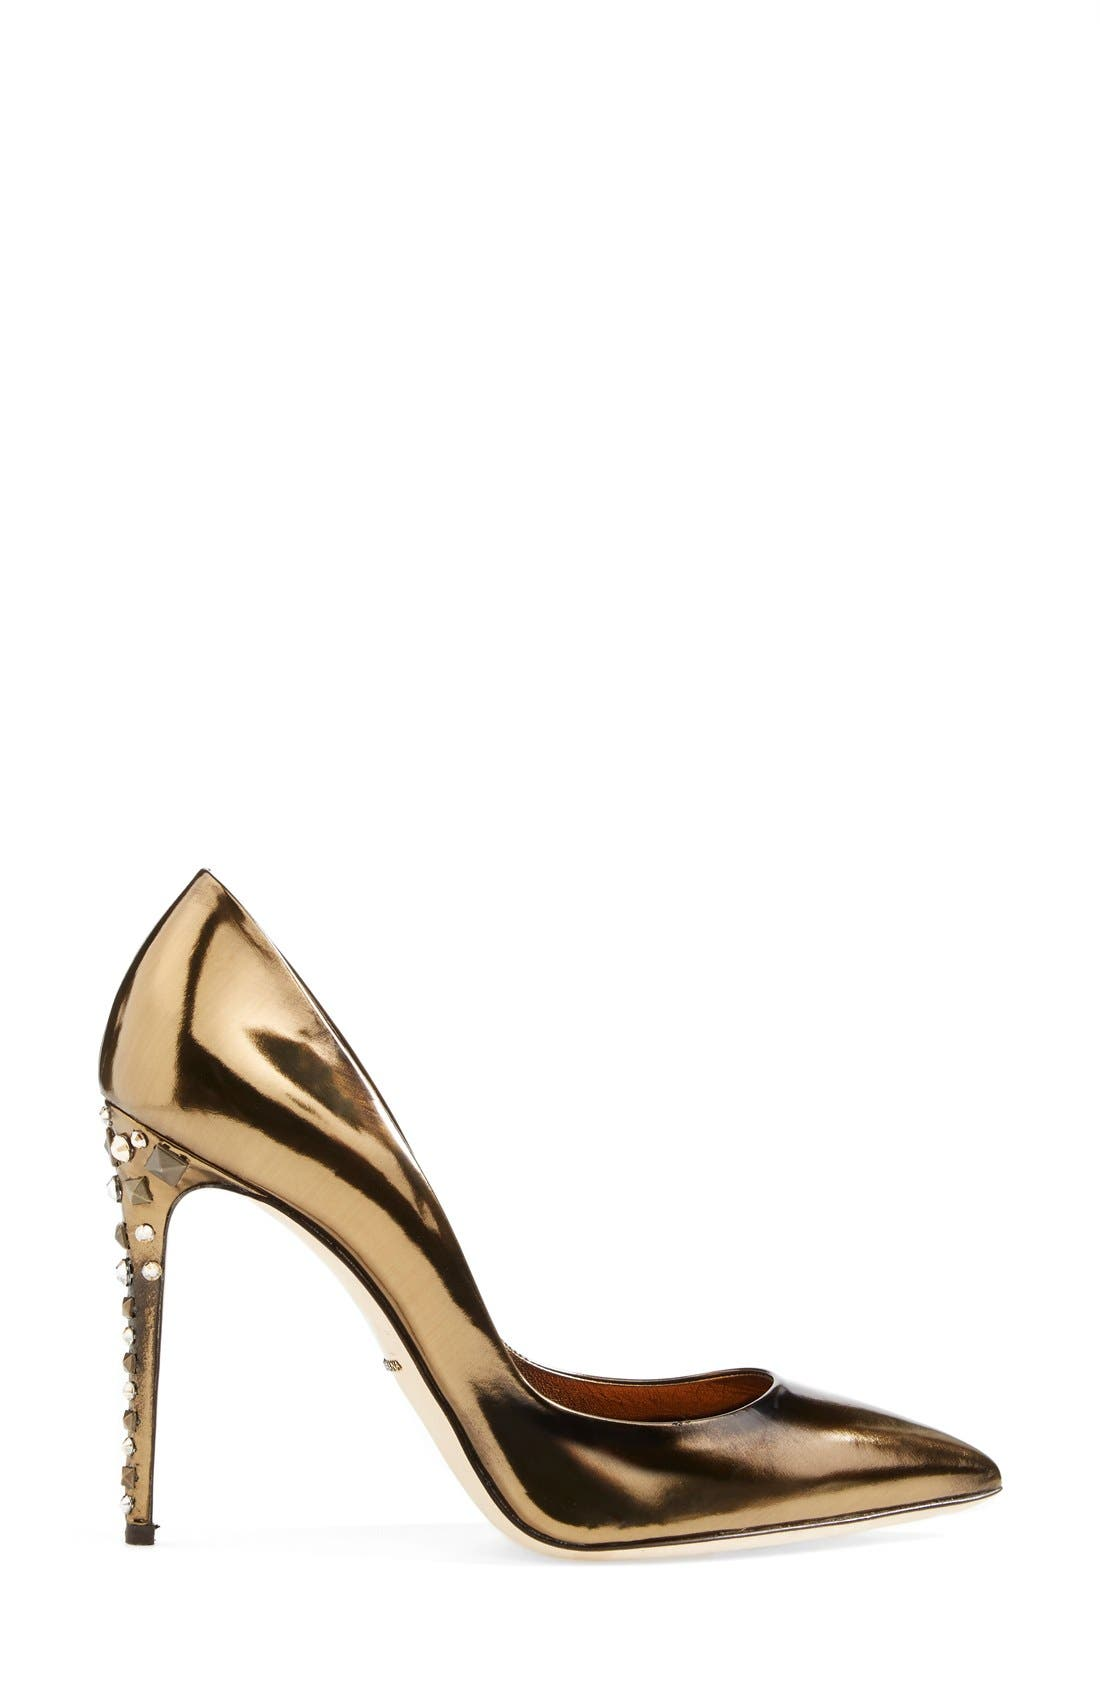 Alternate Image 3  - Dolce&Gabbana Studded Heel Pump (Women)